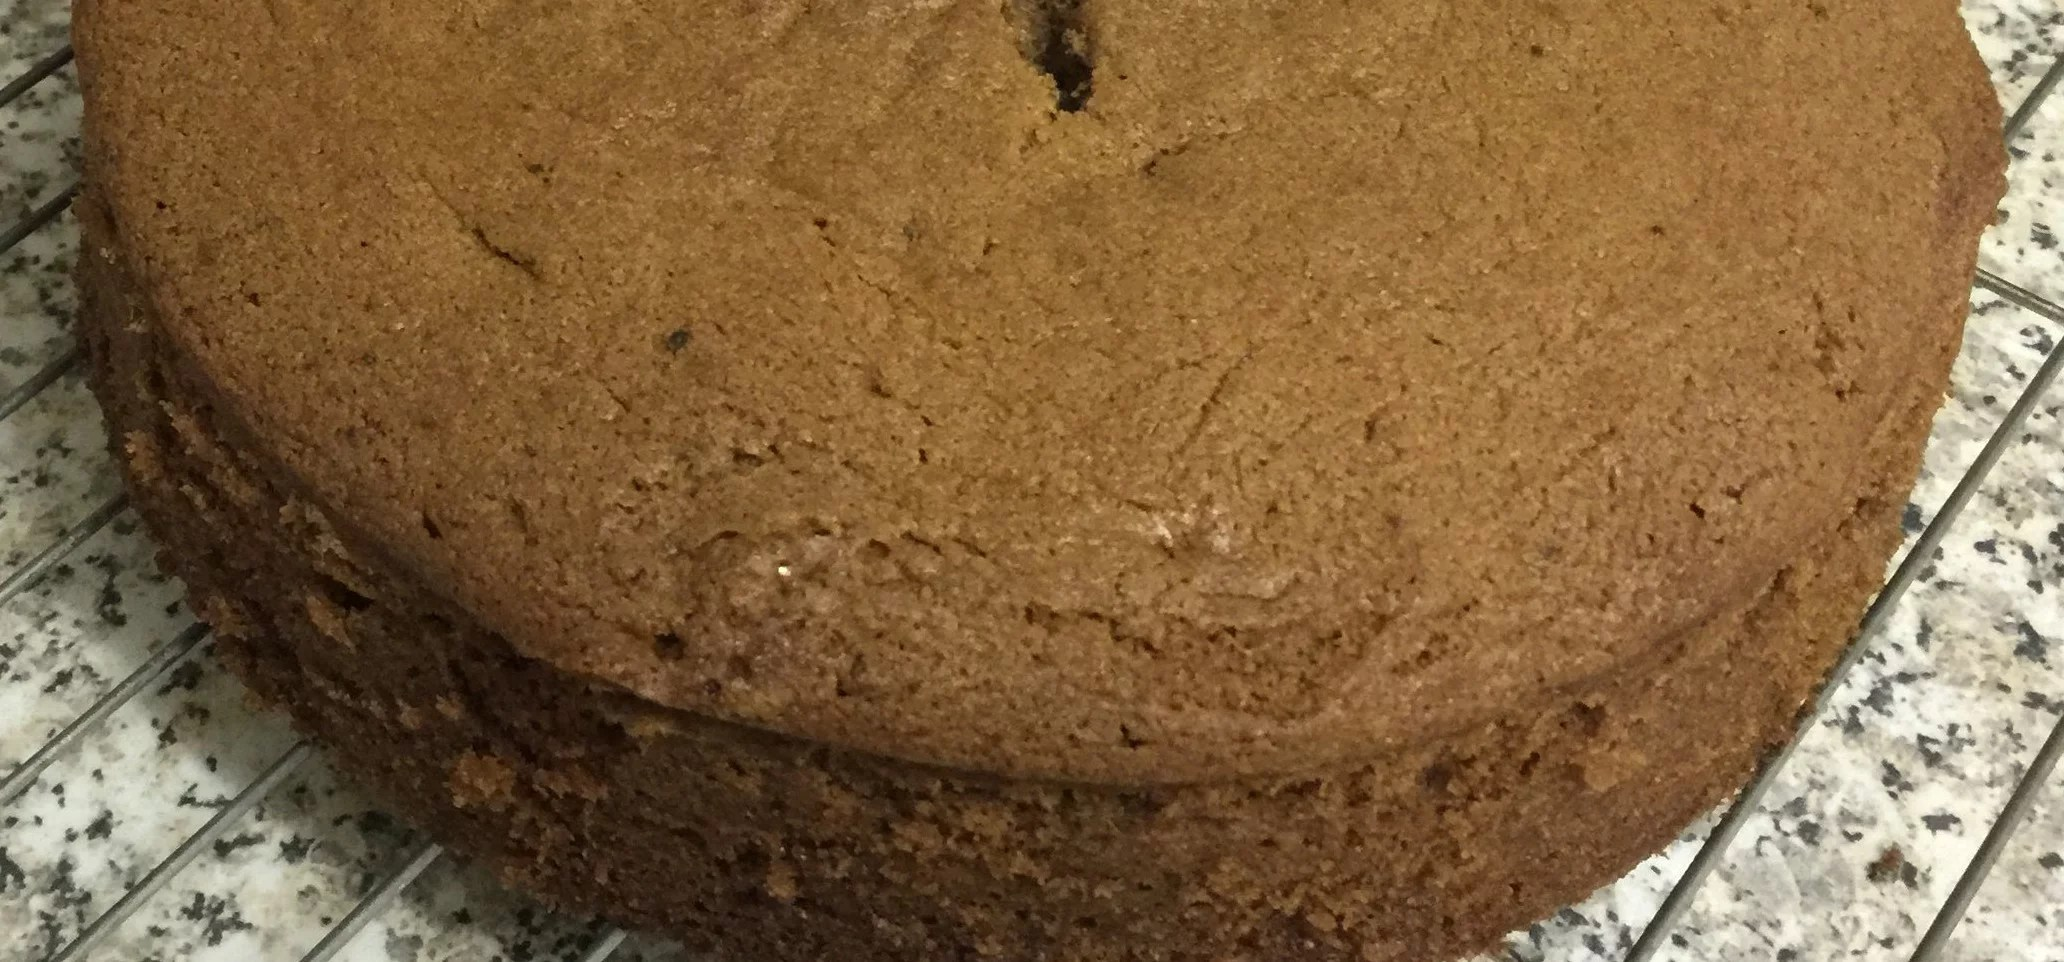 Chocolate cake [cropped]